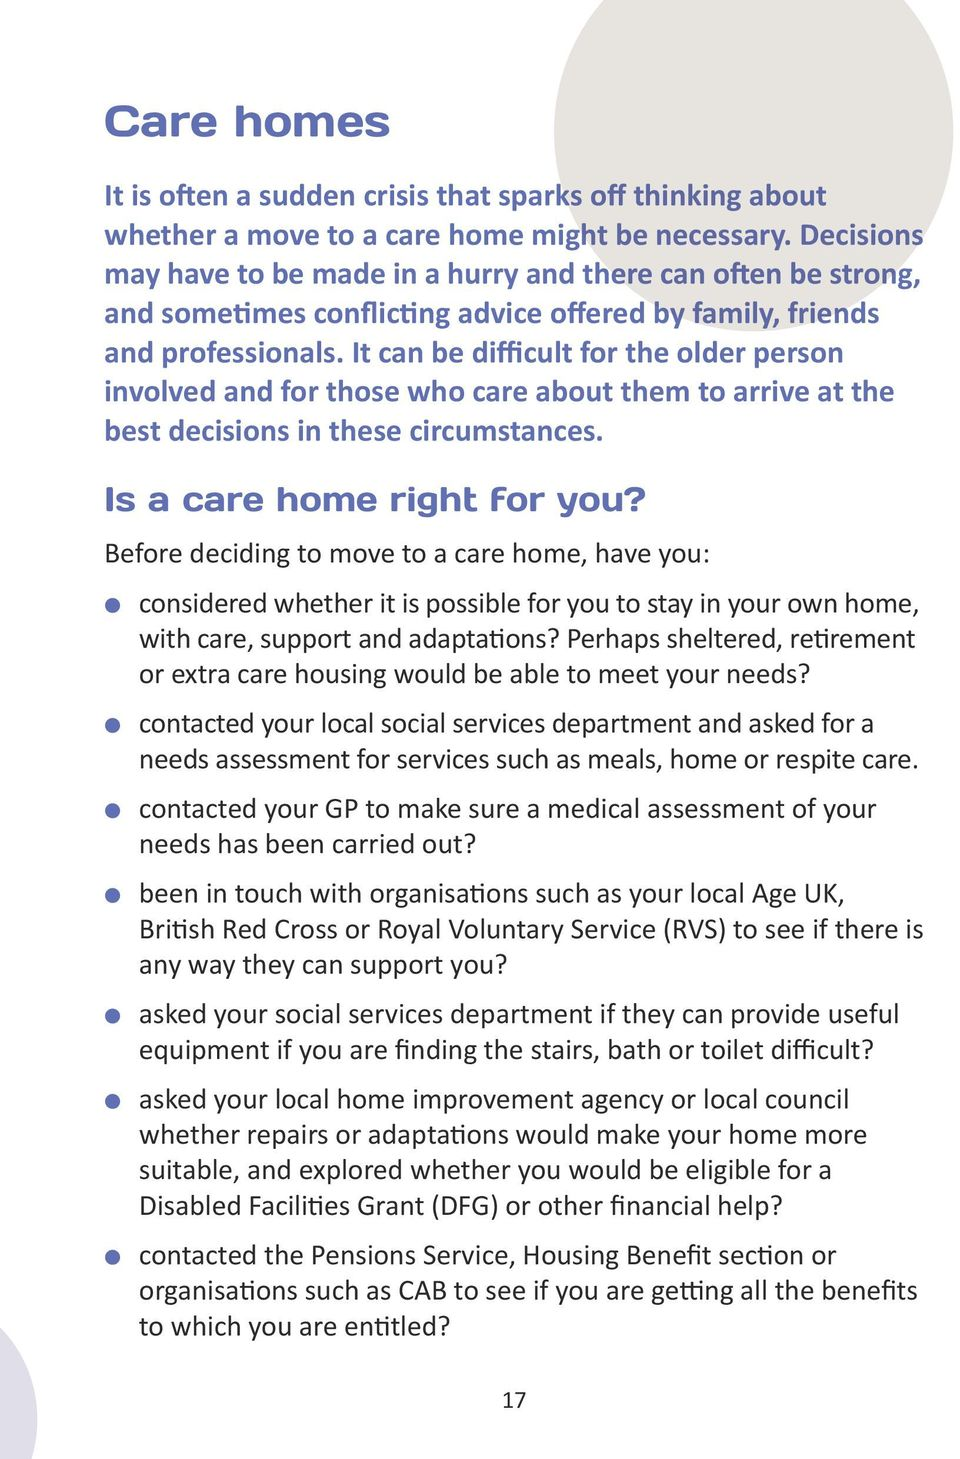 It can be difficult for the older person involved and for those who care about them to arrive at the best decisions in these circumstances. Is a care home right for you?